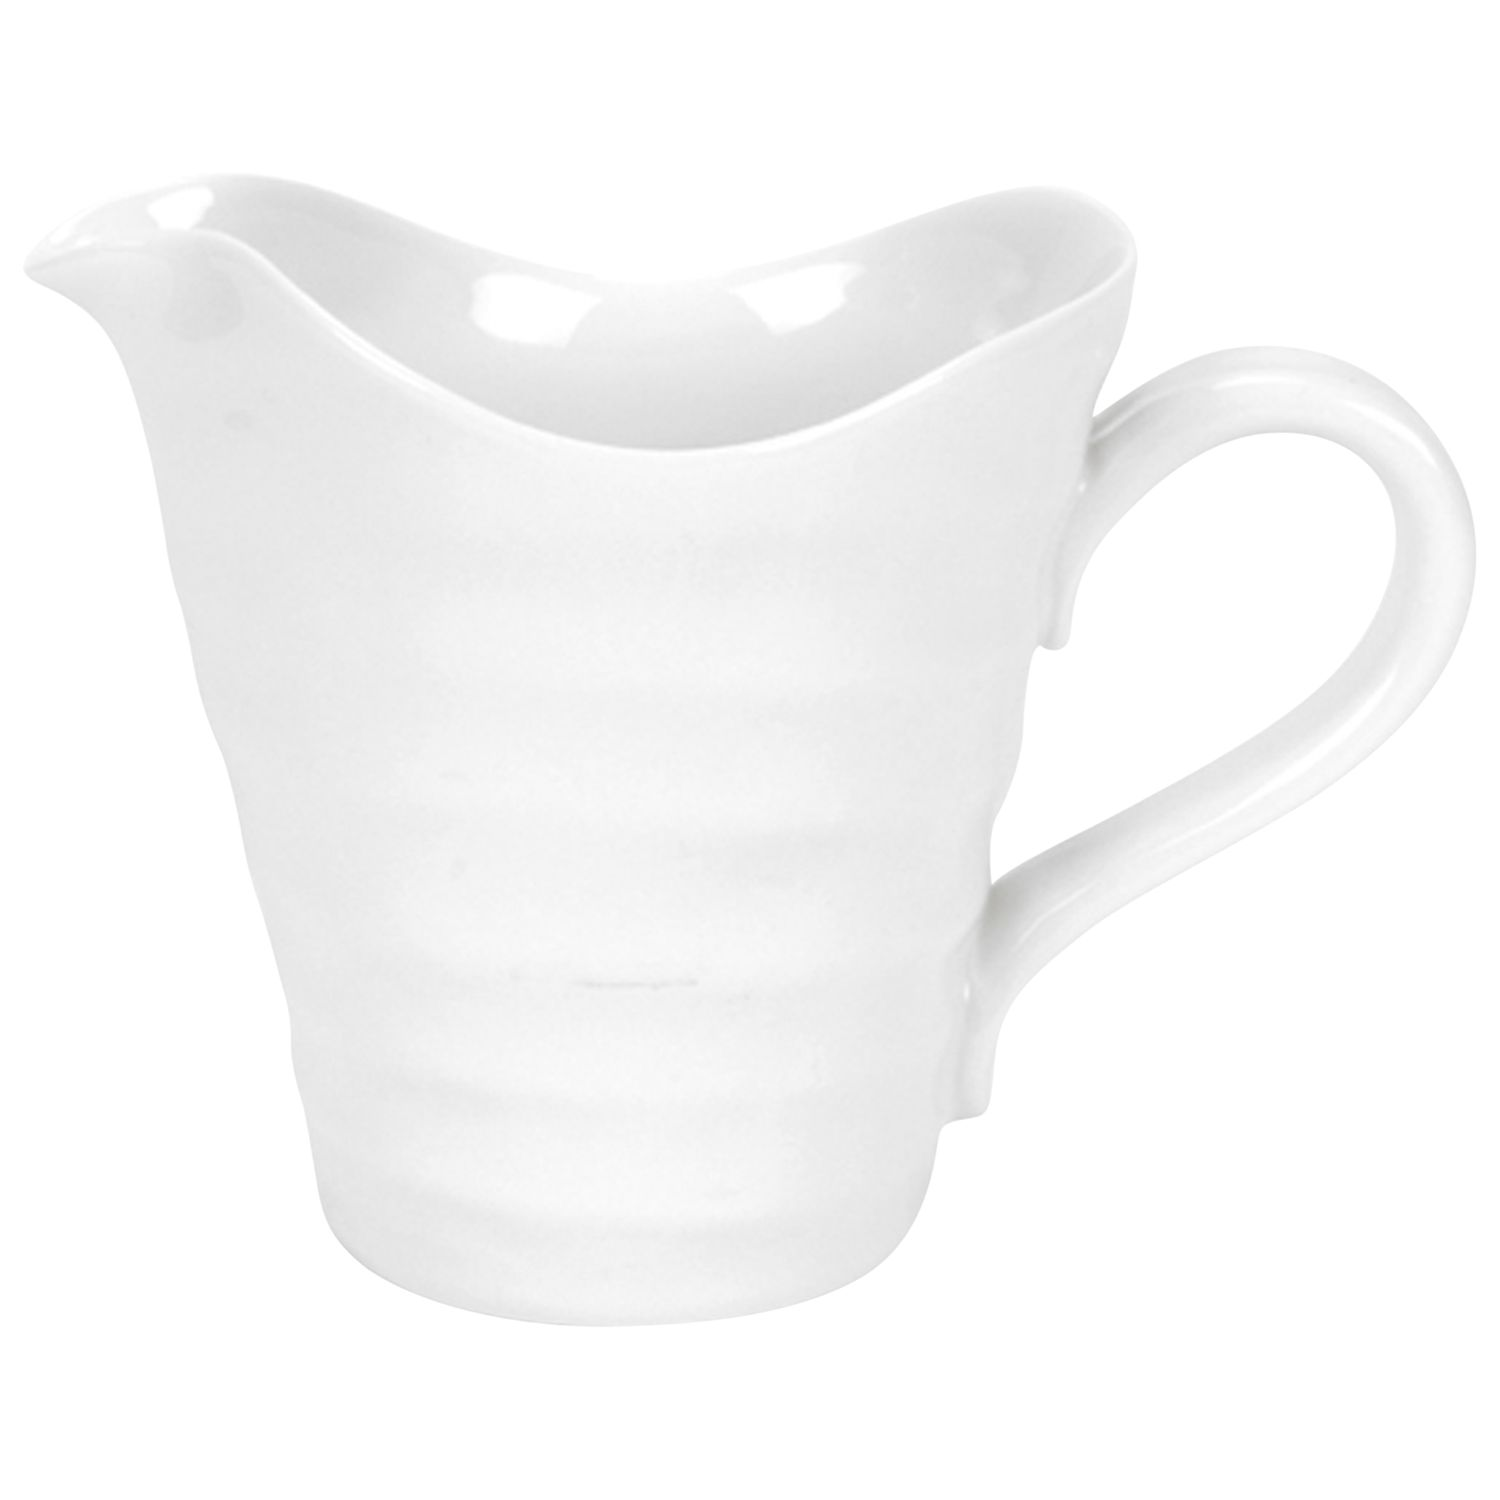 Sophie Conran for Portmeirion Mini Jug, White